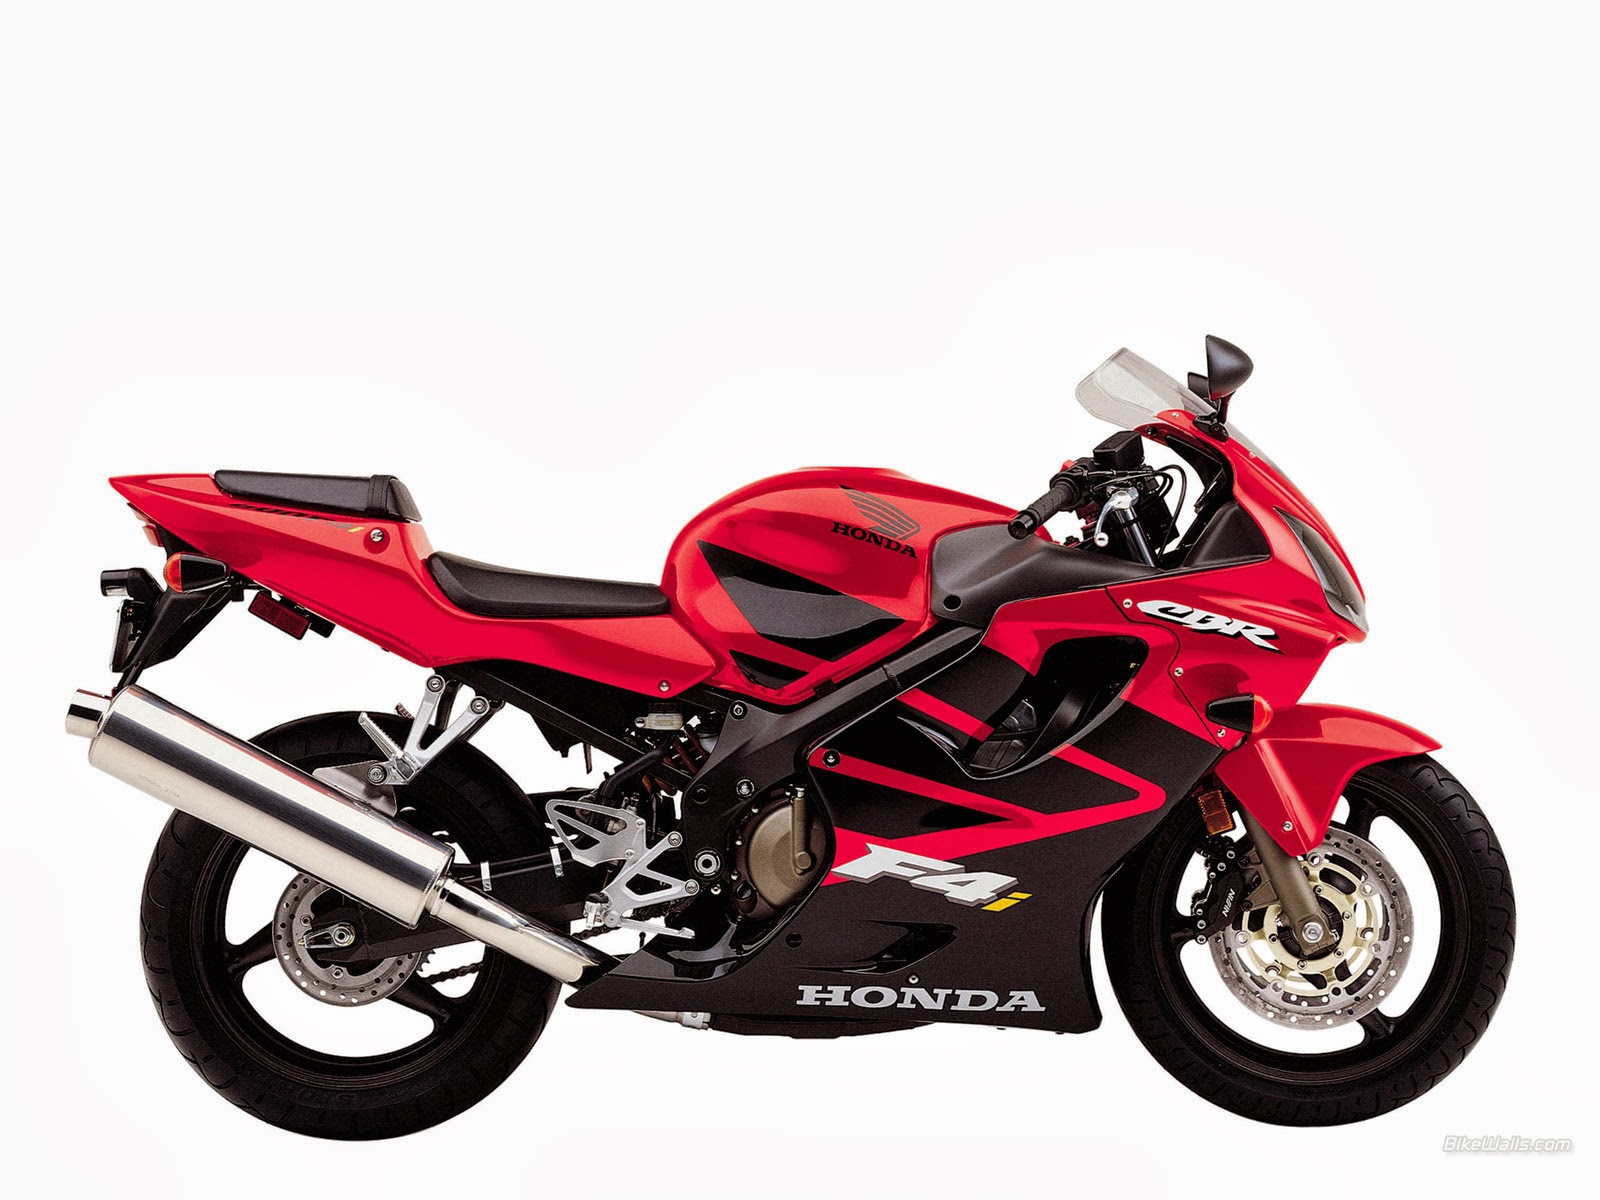 2001 Honda CBR 600 F(4)i - Page 16 - Answered Questions & Fixed issues. ...